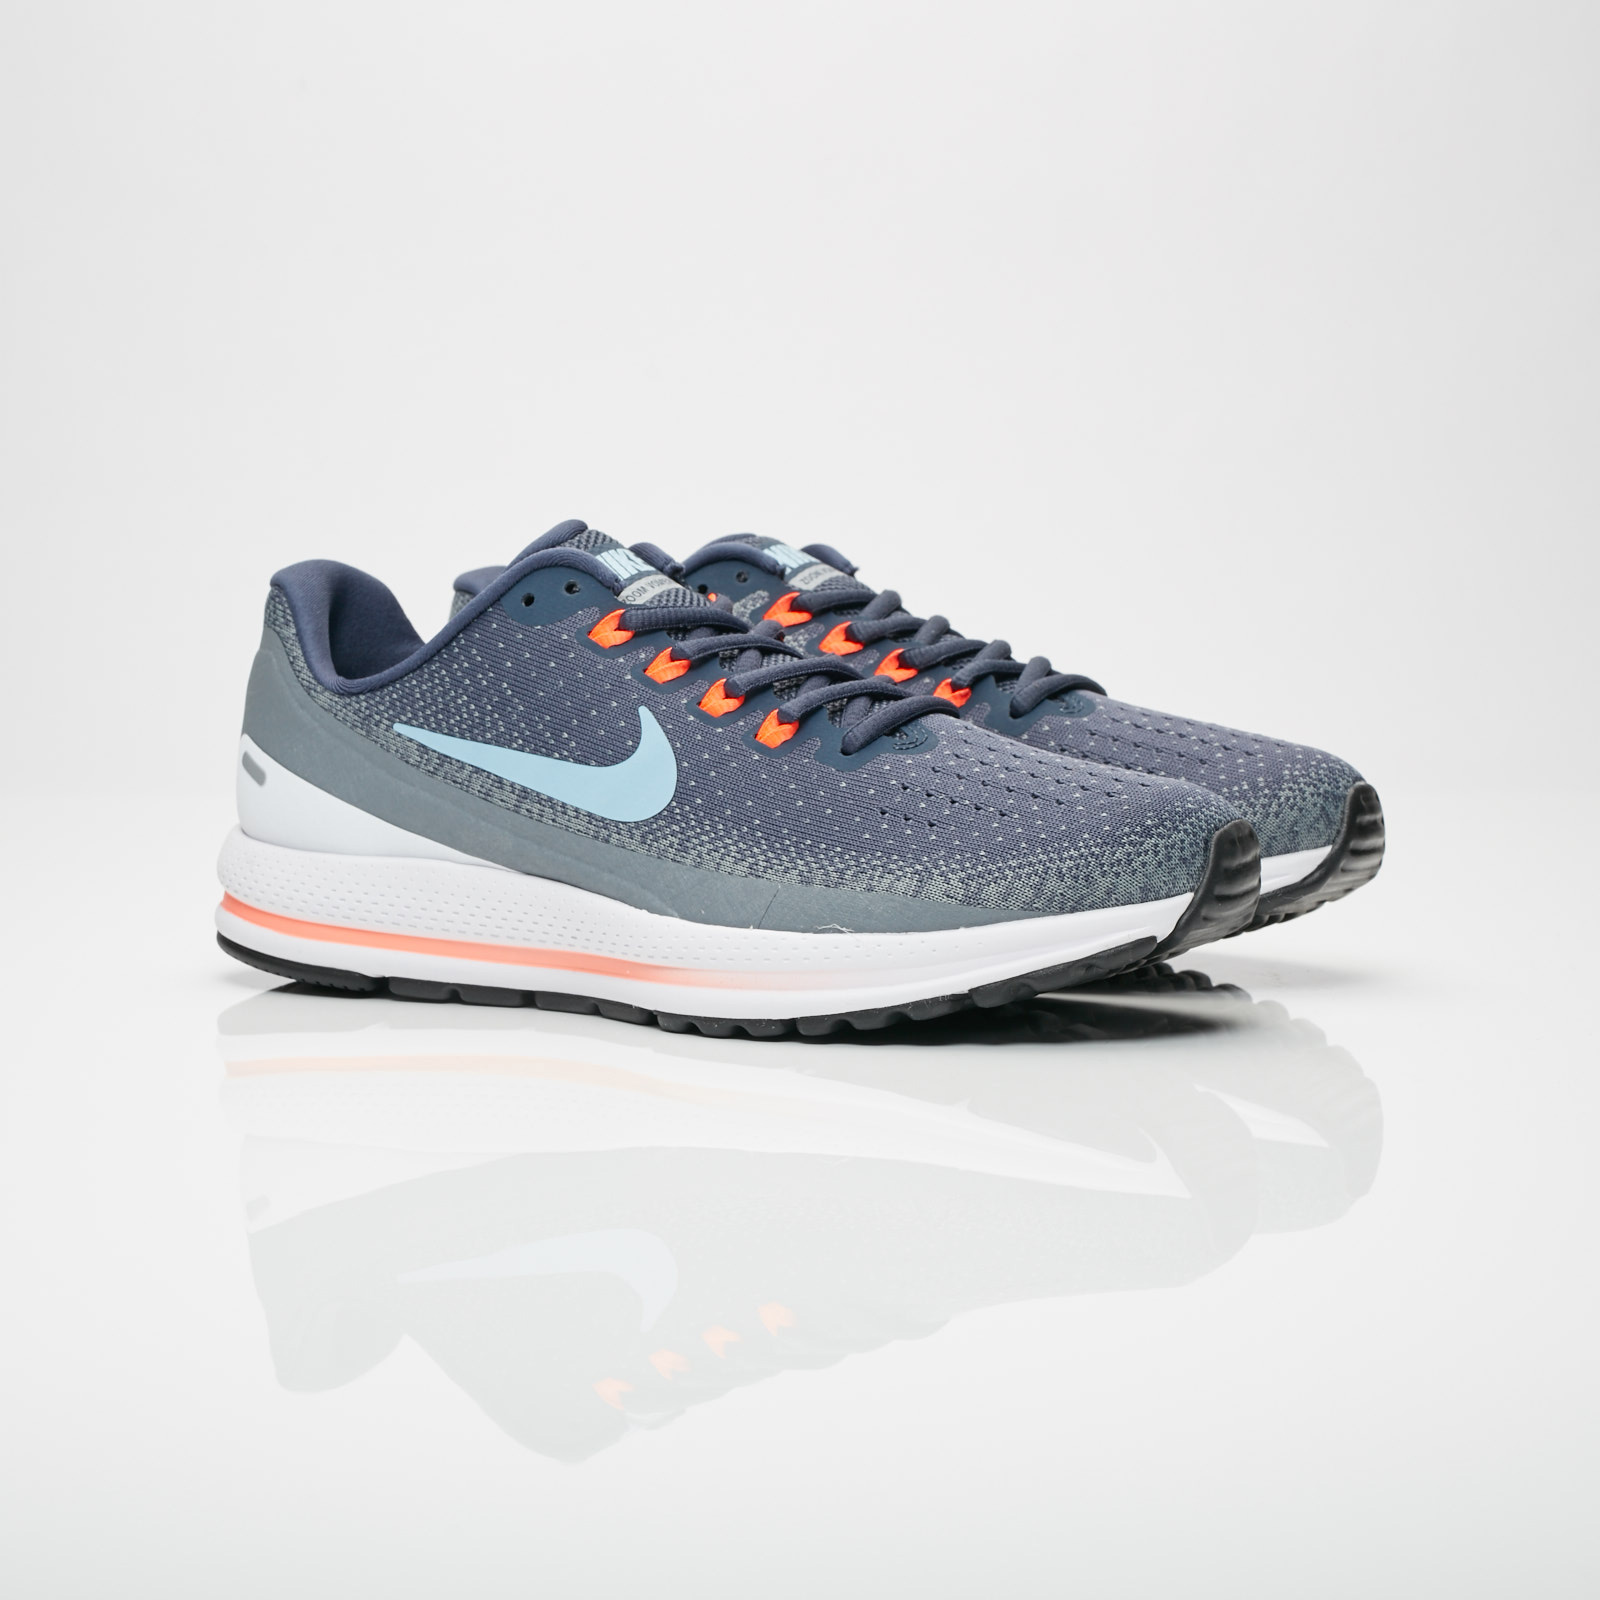 eded11a416cc Nike Air Zoom Vomero 13 - 922908-400 - Sneakersnstuff